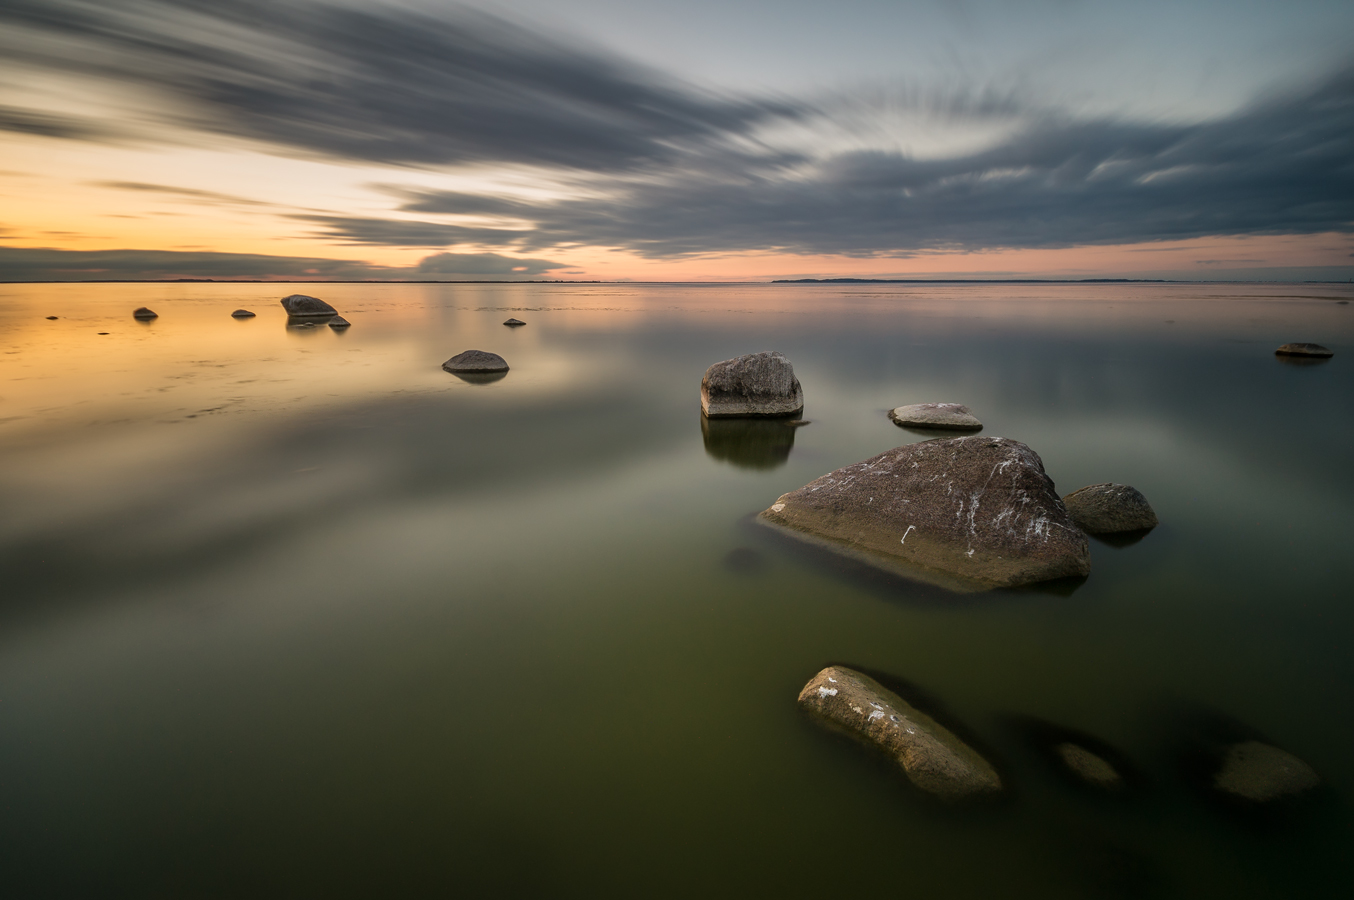 Light,water and stones